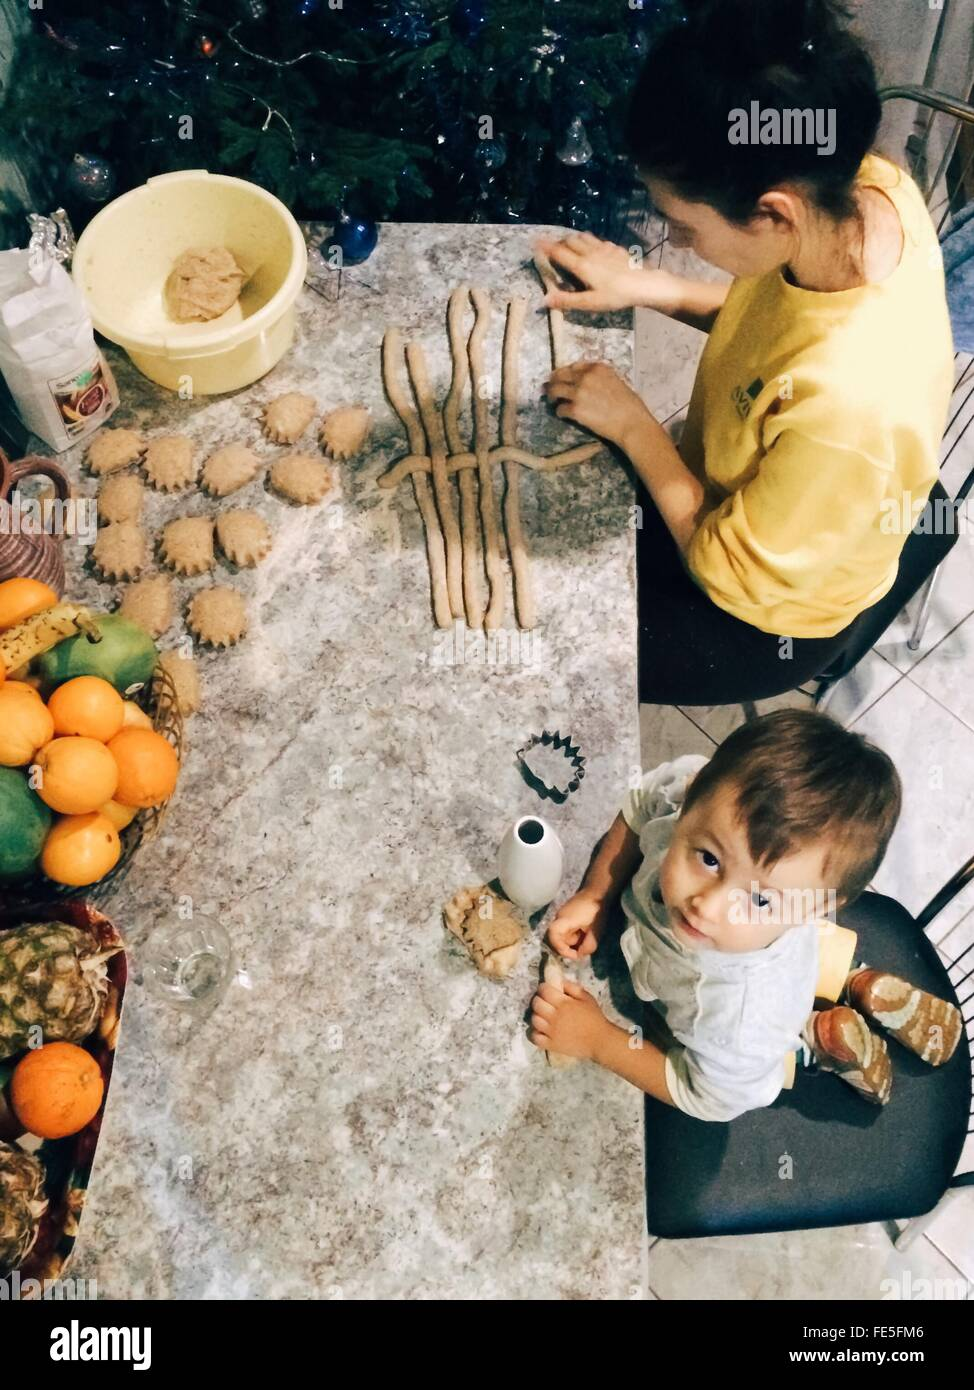 High Angle View Of Son Helping Mother In Preparing Food On Table - Stock Image